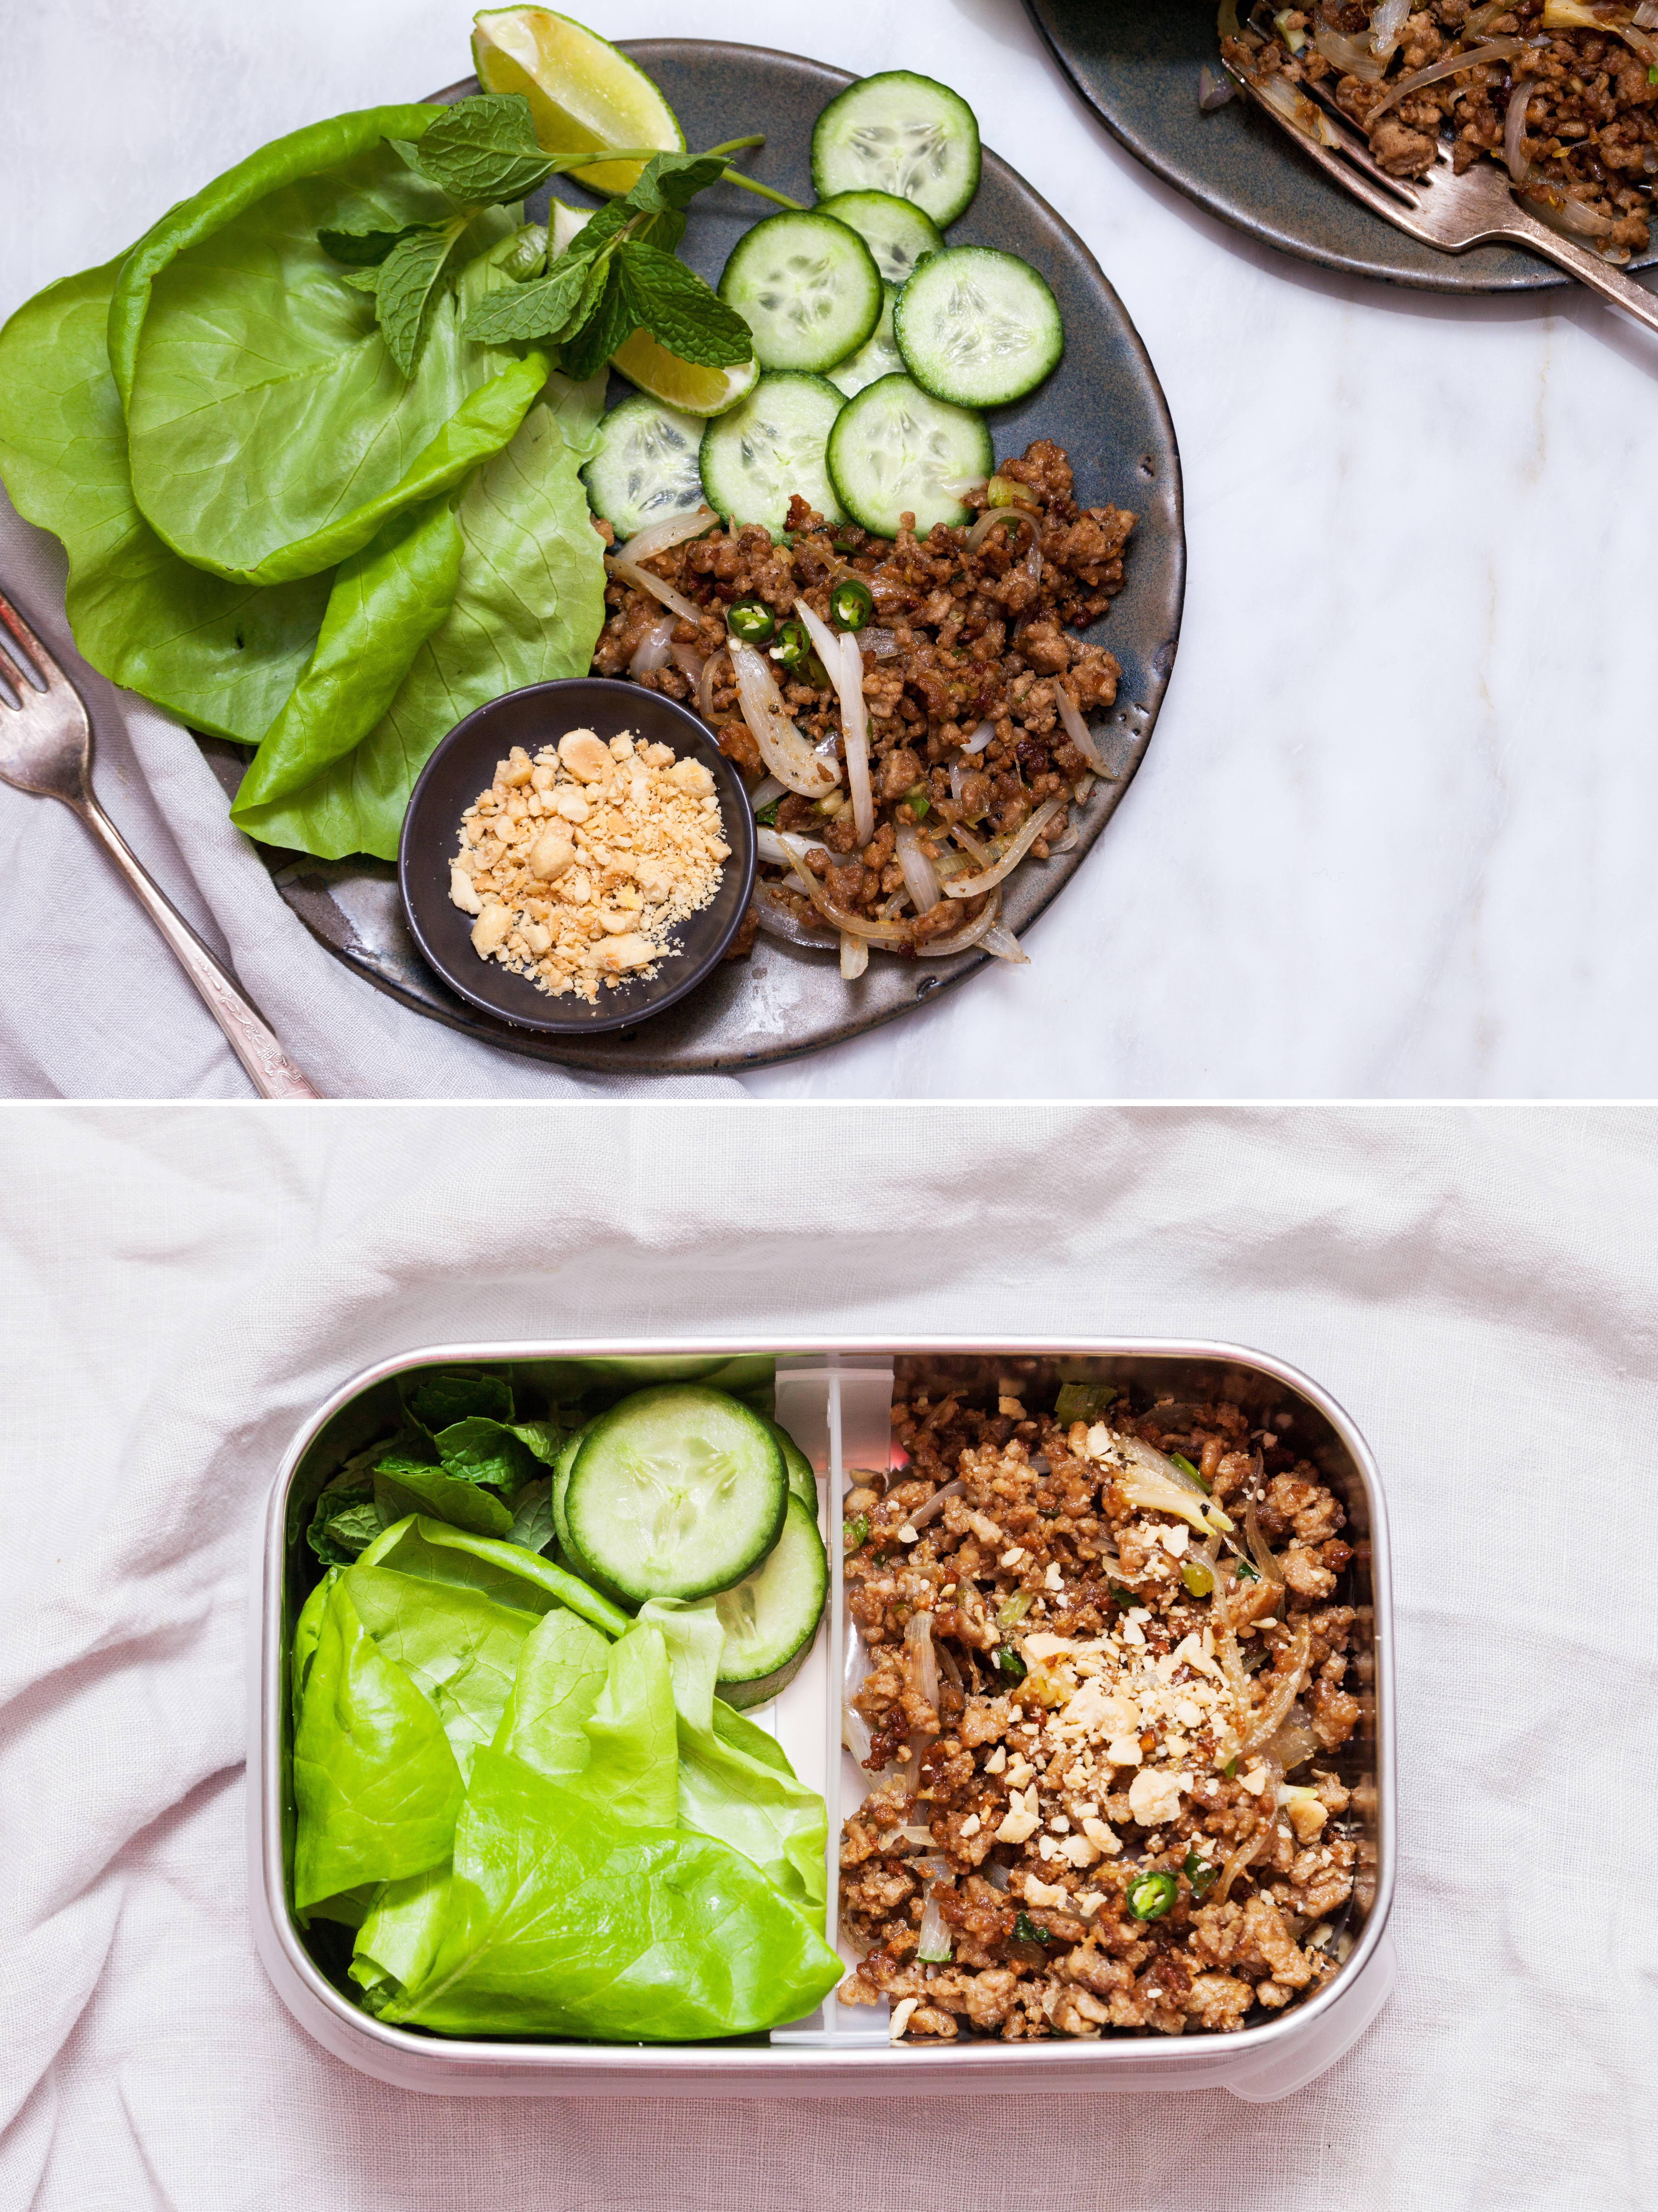 28 points and 10 comments so far on reddit mindful eating im having fun meal prepping decided to ease my husband into pre portioned lunches with this awesome laab moo recipe and tips in the comments forumfinder Choice Image